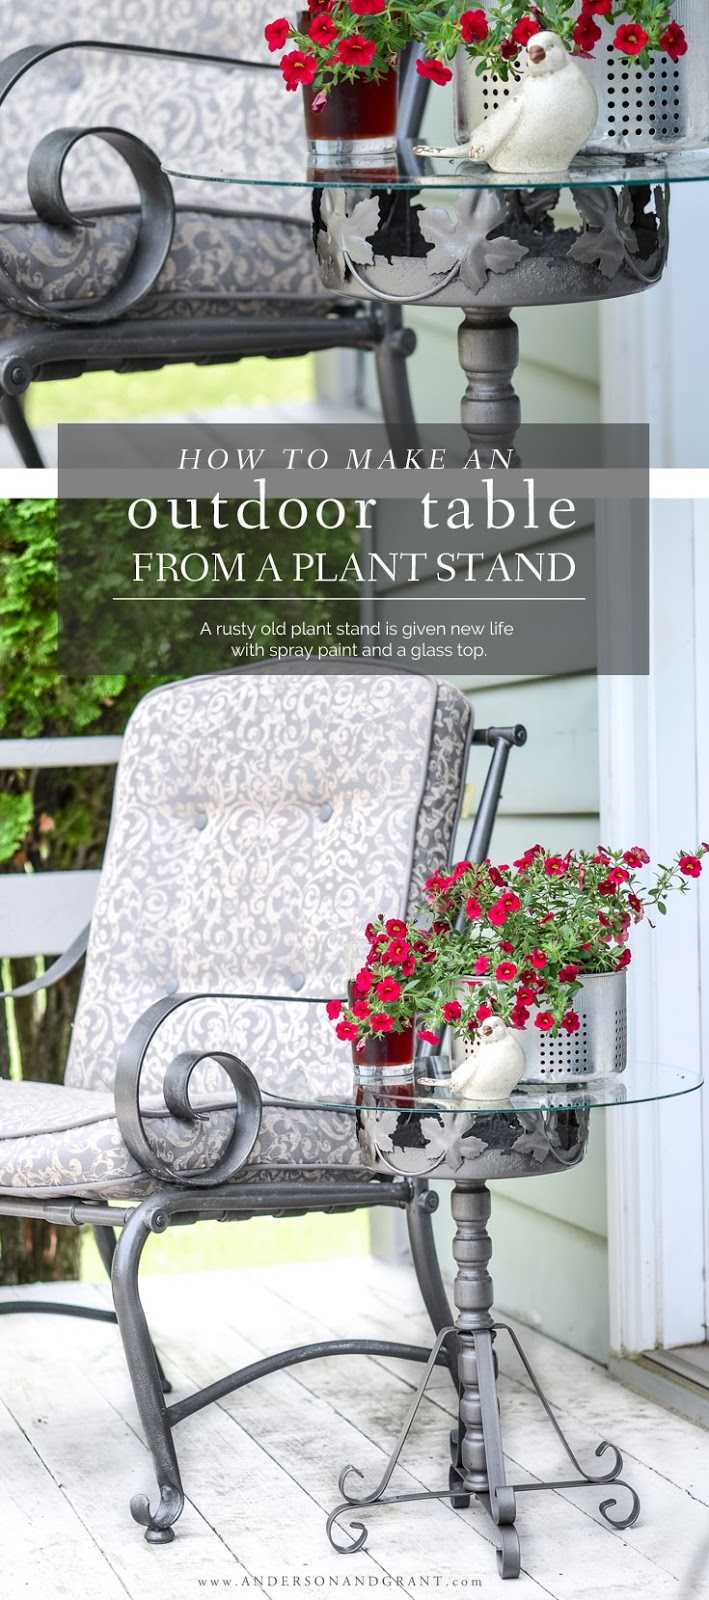 Outdoor side table made from a repurposed rusty plant stand.  #DIY #DIYdecor #outdoortable #DIYtable #repurposed